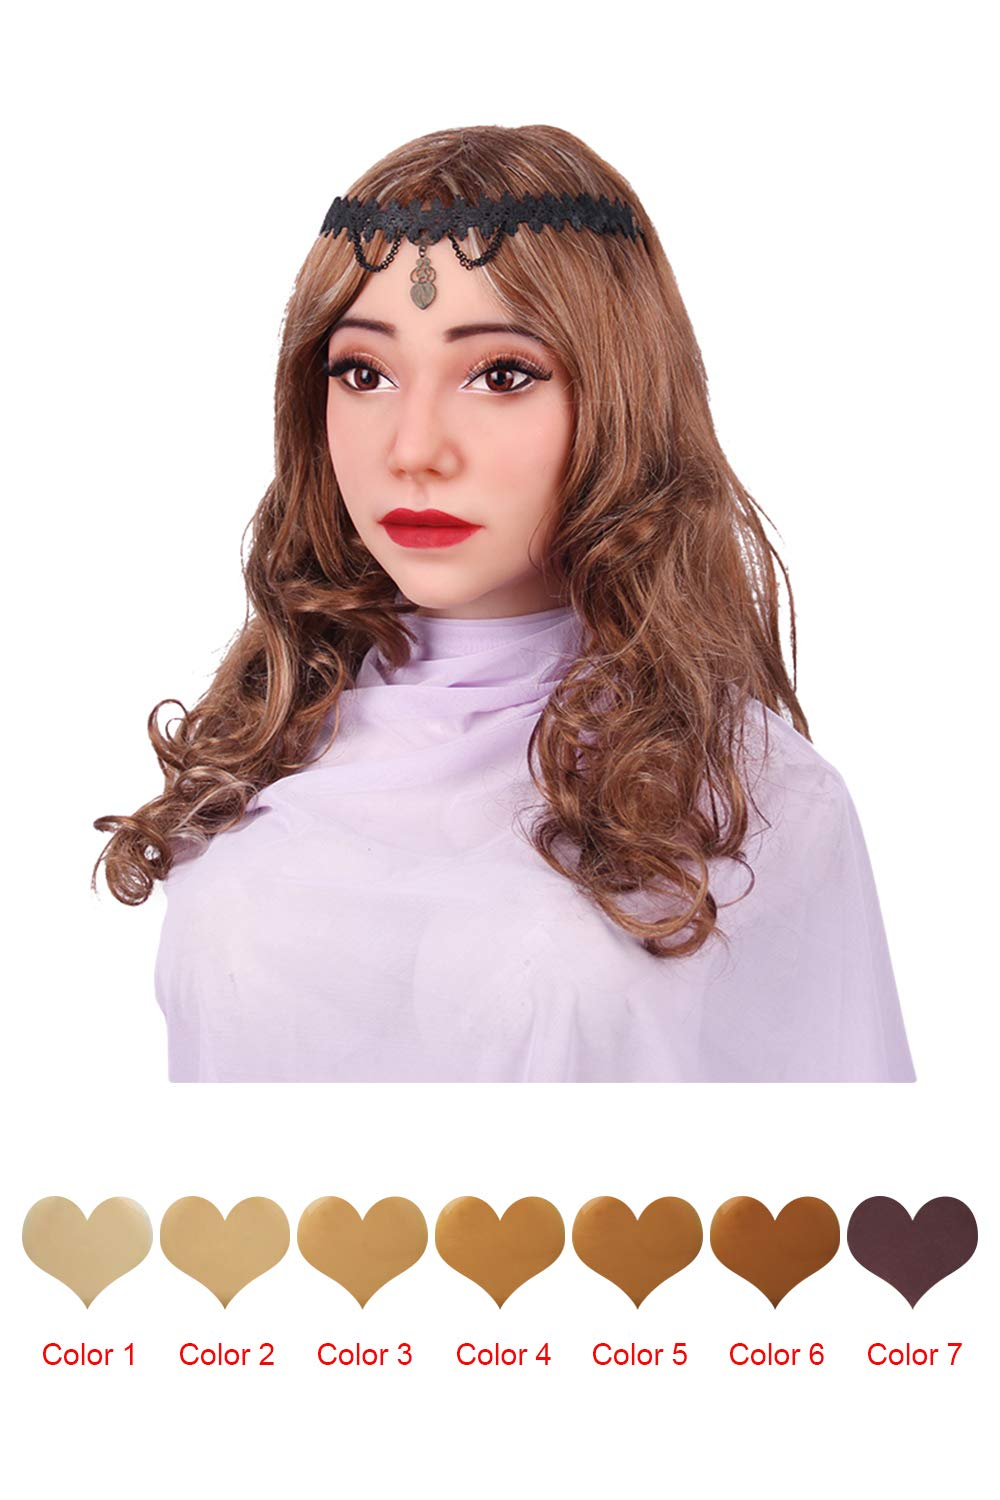 FEEDGO Silicone Female Fcae Mask Kath Makeup for Crossdresser Transgender Halloween Costumes(Color3,) by FEEDGO